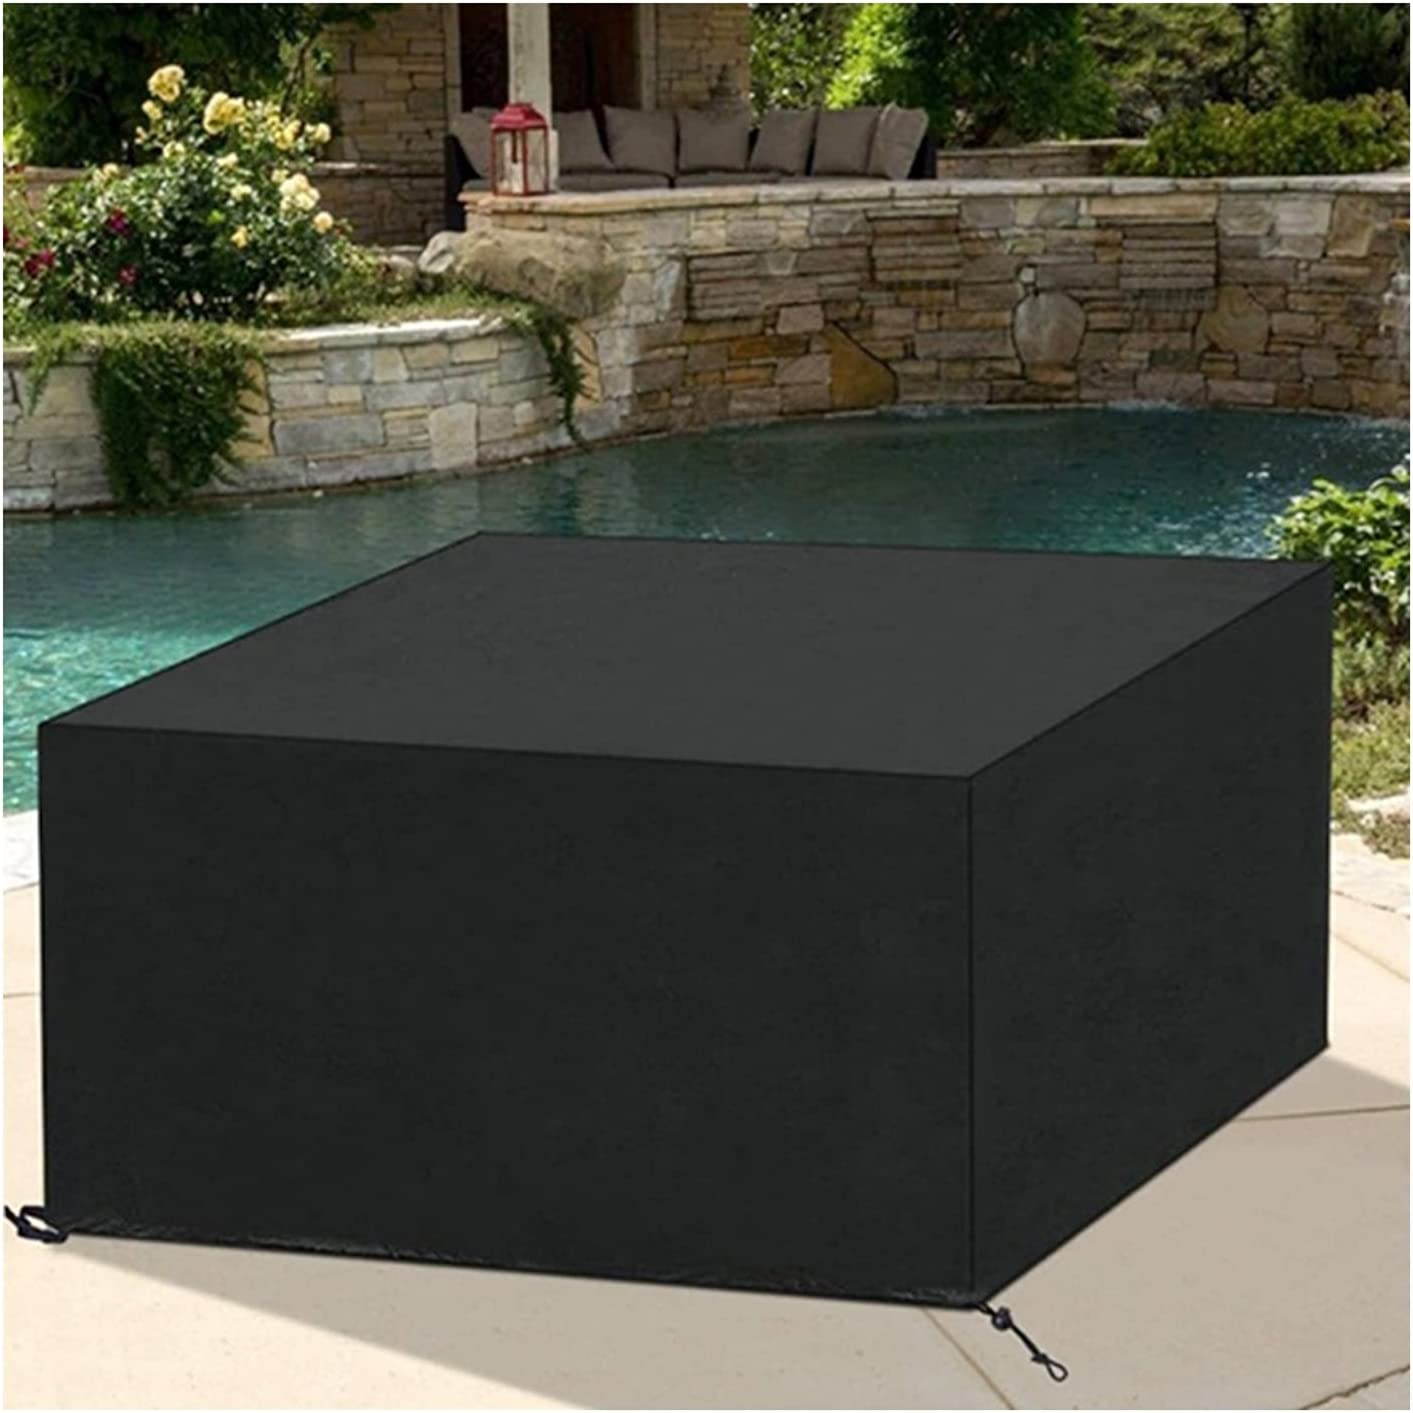 Max 83% OFF ZWYSL Limited time sale Garden Furniture Covers Patio Waterproof Cover 4